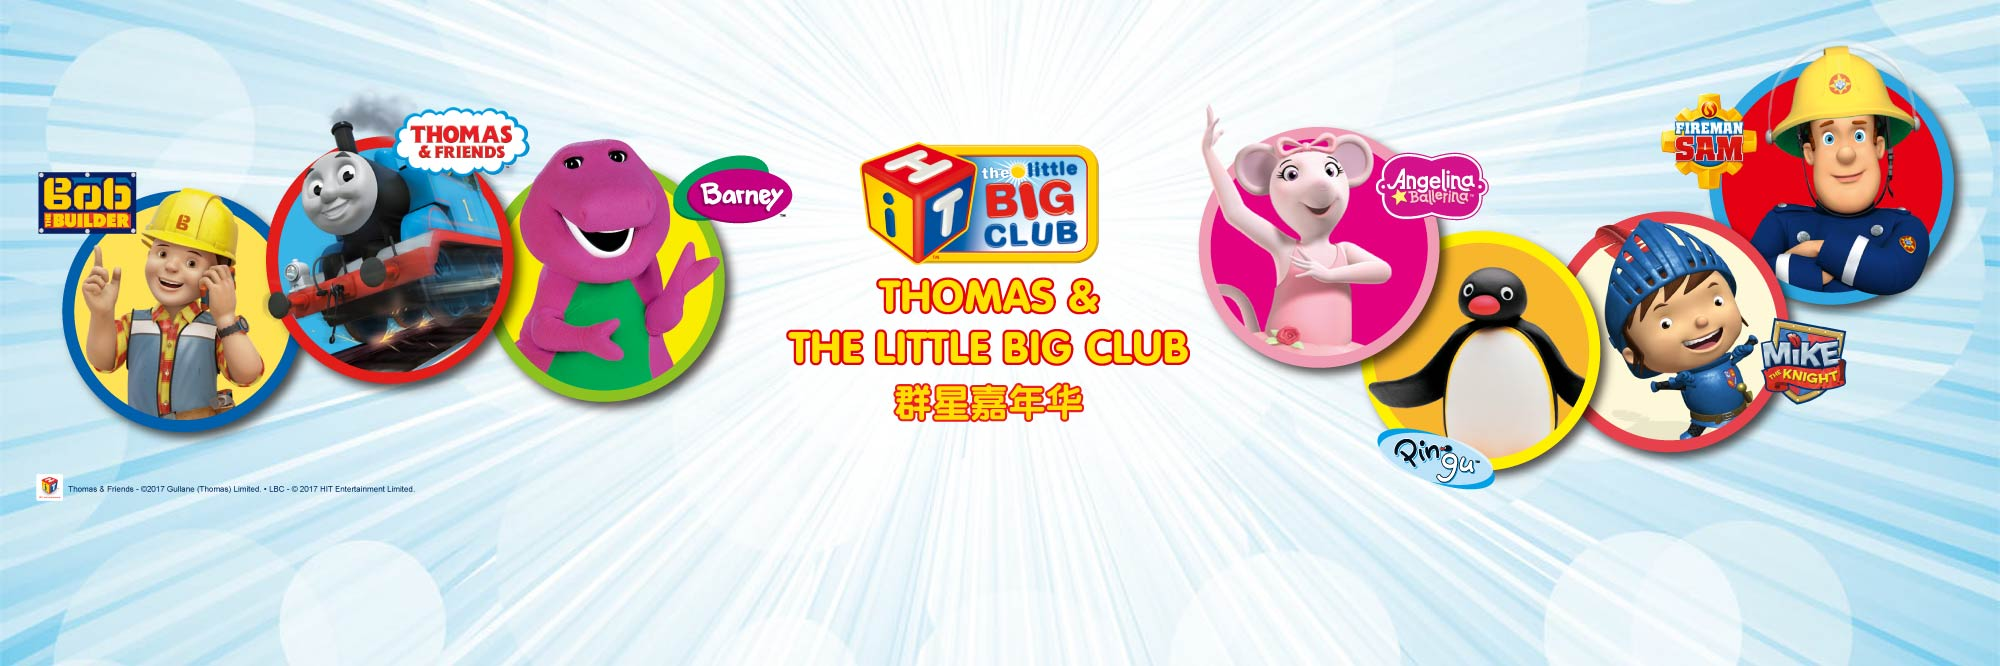 THE LITTLE BIG CLUB 群星主题活动